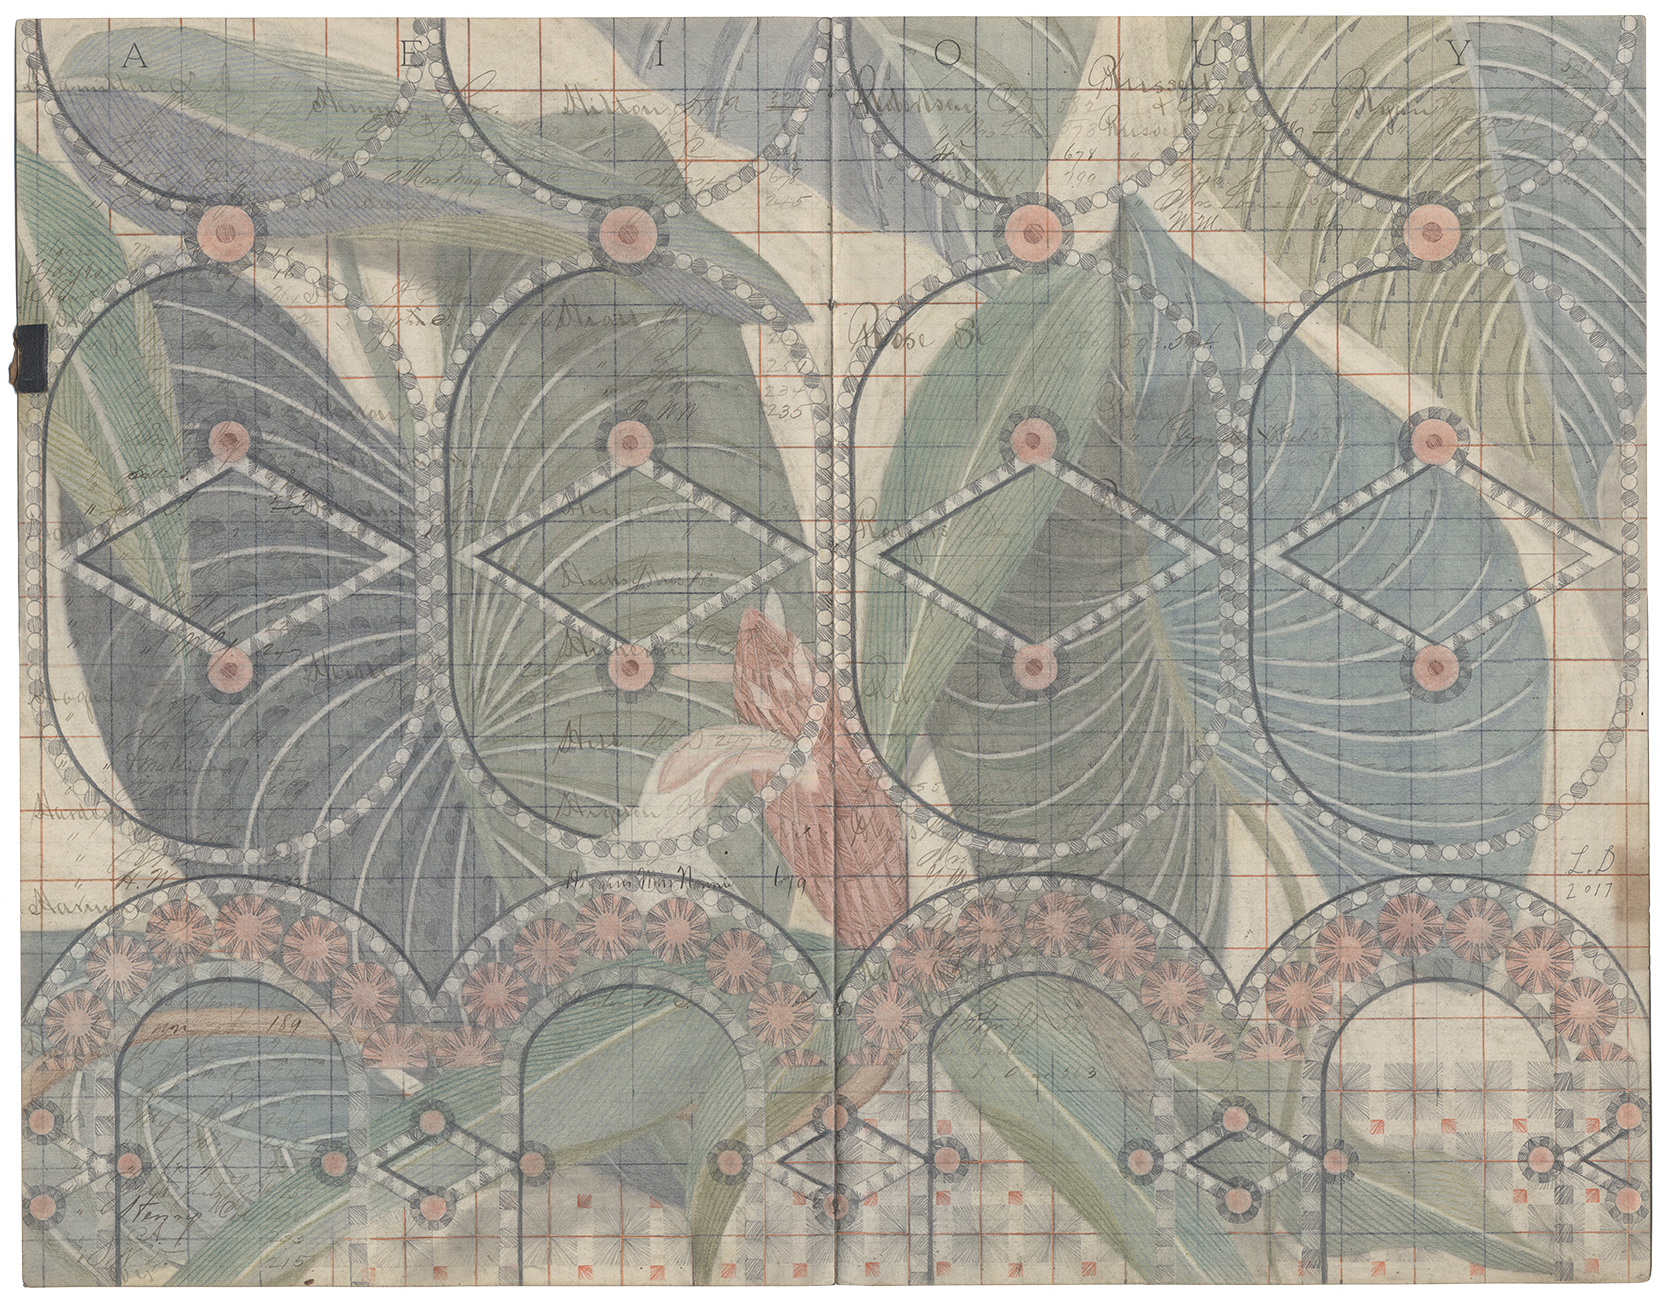 Garden Fence,Colored Pencil and Graphite on Antique Ledger Book Pages. 18 x 23 inches